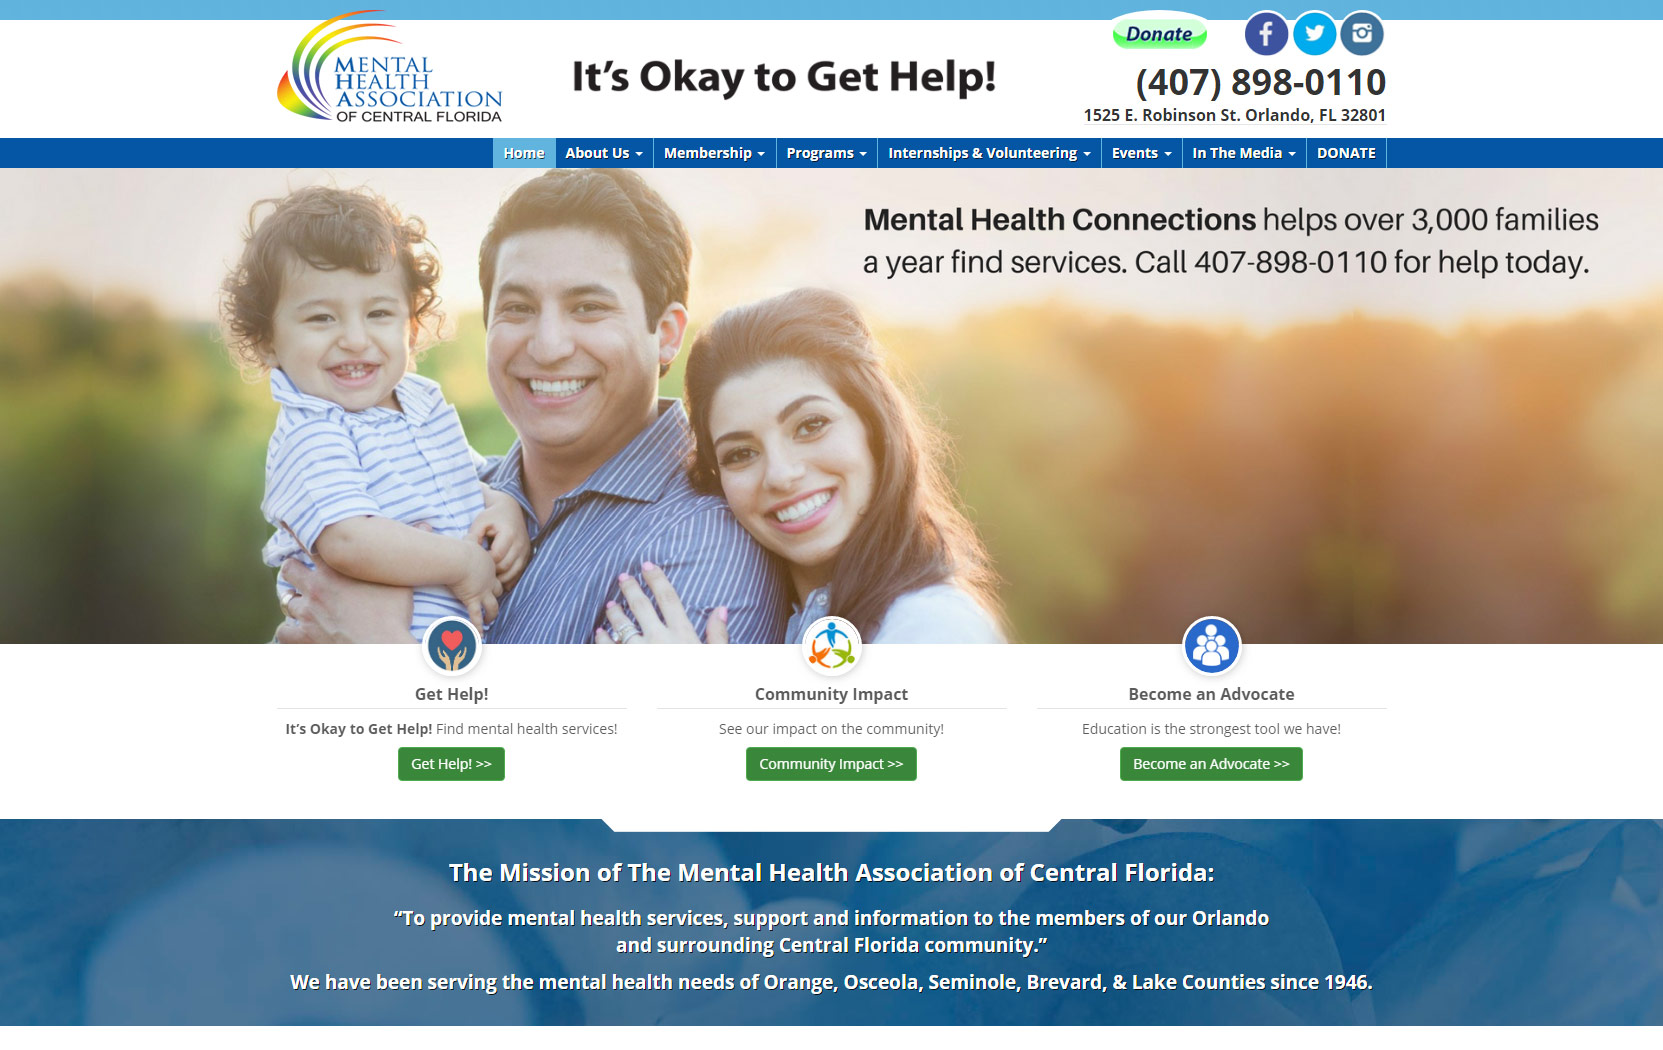 Mental Health Association of Central Florida